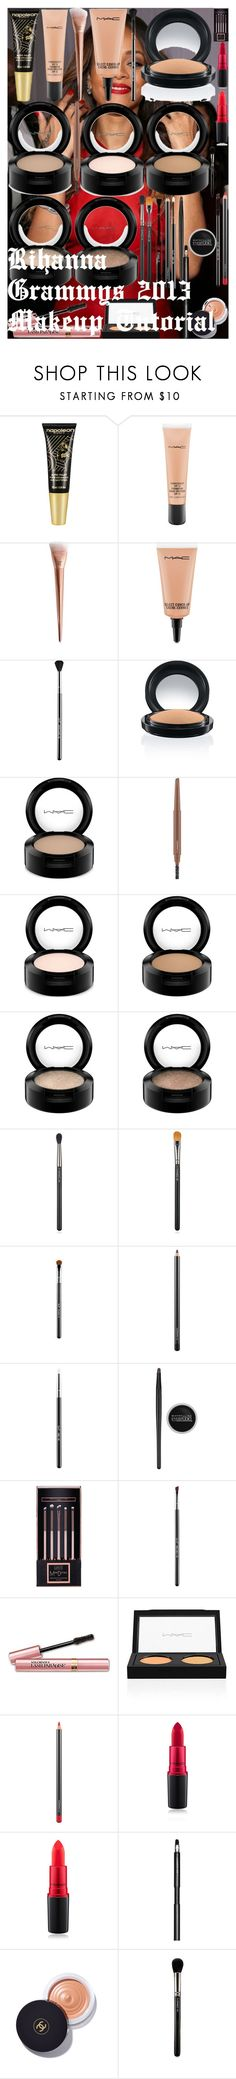 Rihanna Grammys 2013 Makeup Tutorial by oroartye-1 on Polyvore featuring beauty, MAC Cosmetics, Chanel, Sigma, L'Oréal Paris, Maybelline, Napoleon Perdis and Luxie